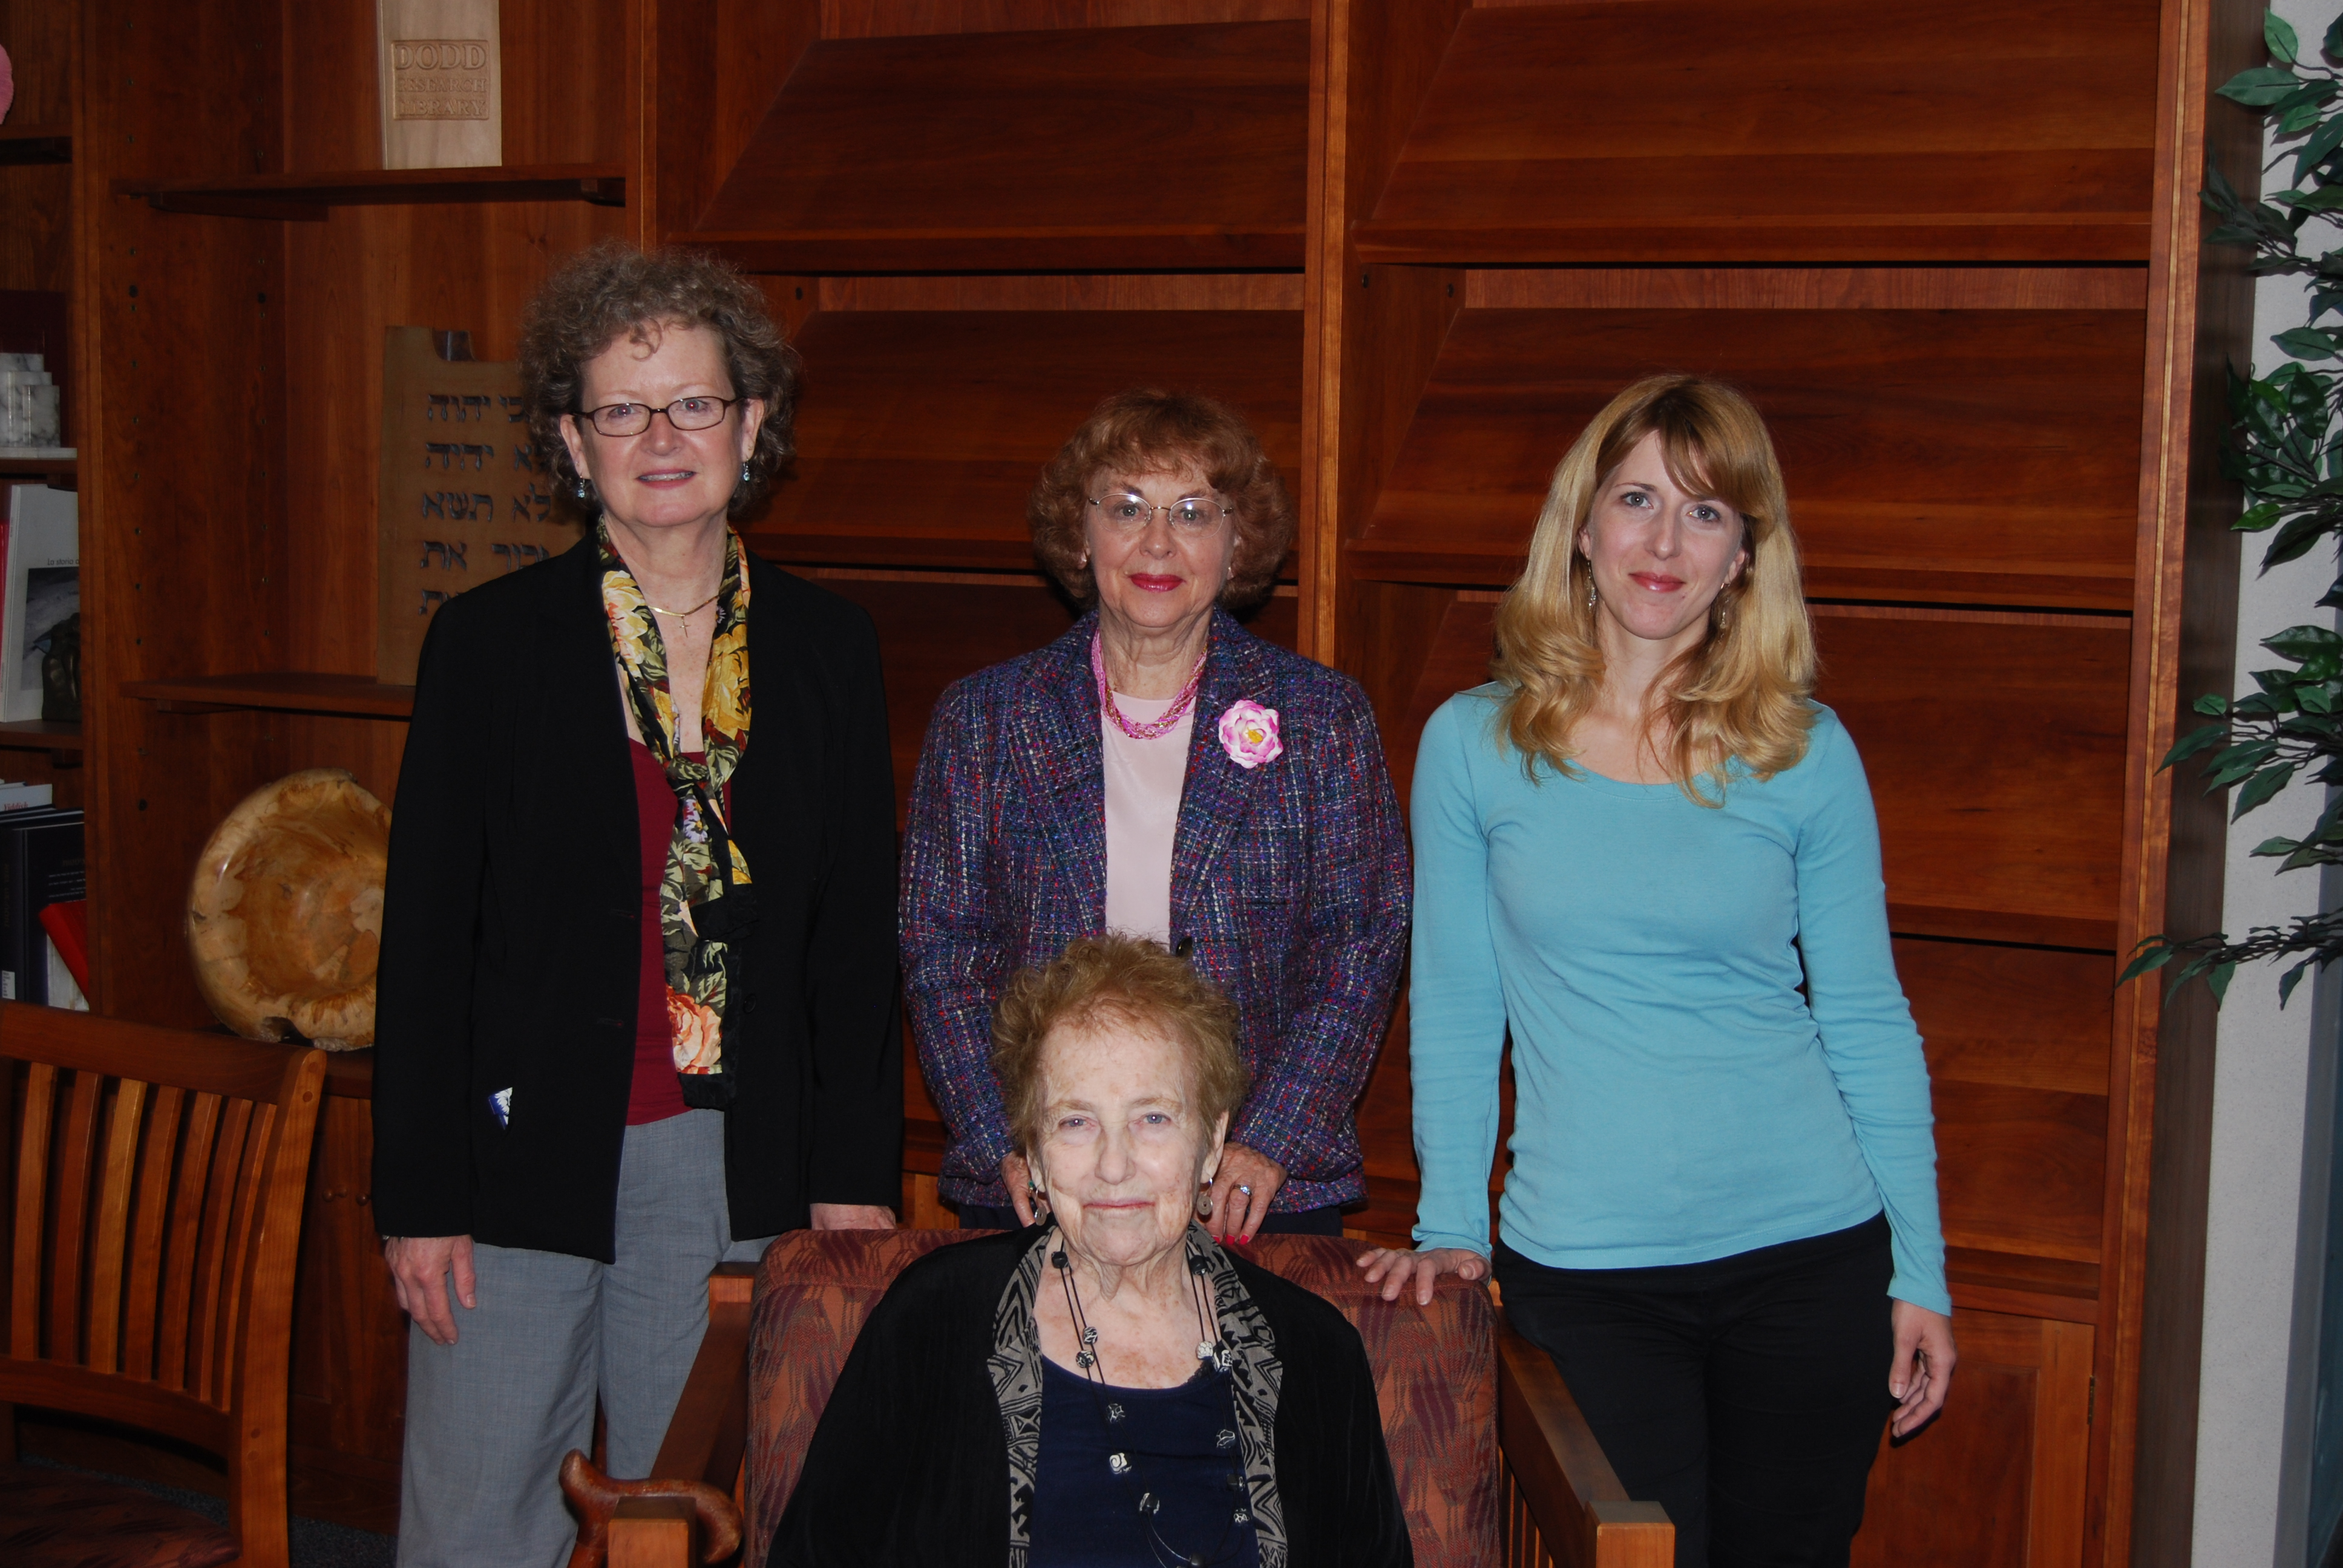 l-r: Terri J. Goldich, Curator; Billie M. Levy, Donor; Kena Sosa, Researcher.  Seated:  Mrs. Eva Greenwood.